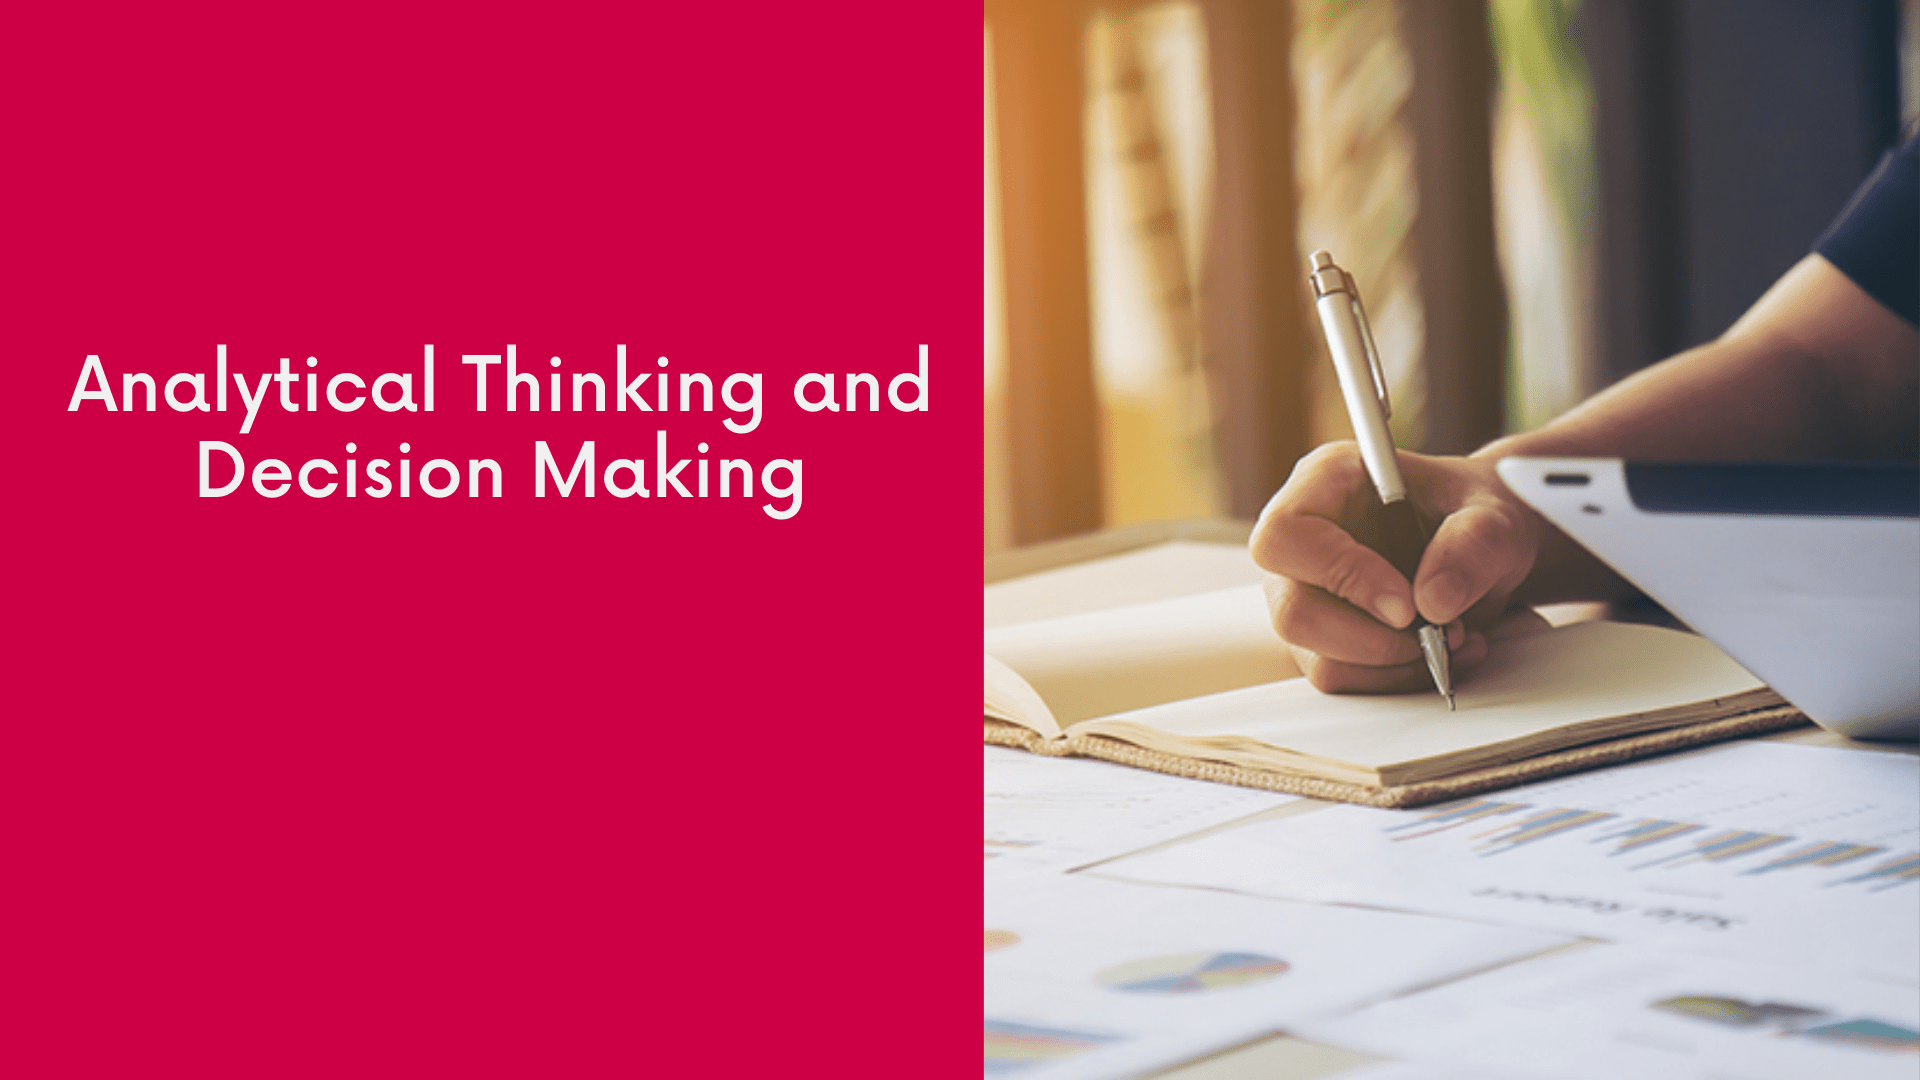 Analytical Thinking and Decision Making (ATDM) at The DG Study World